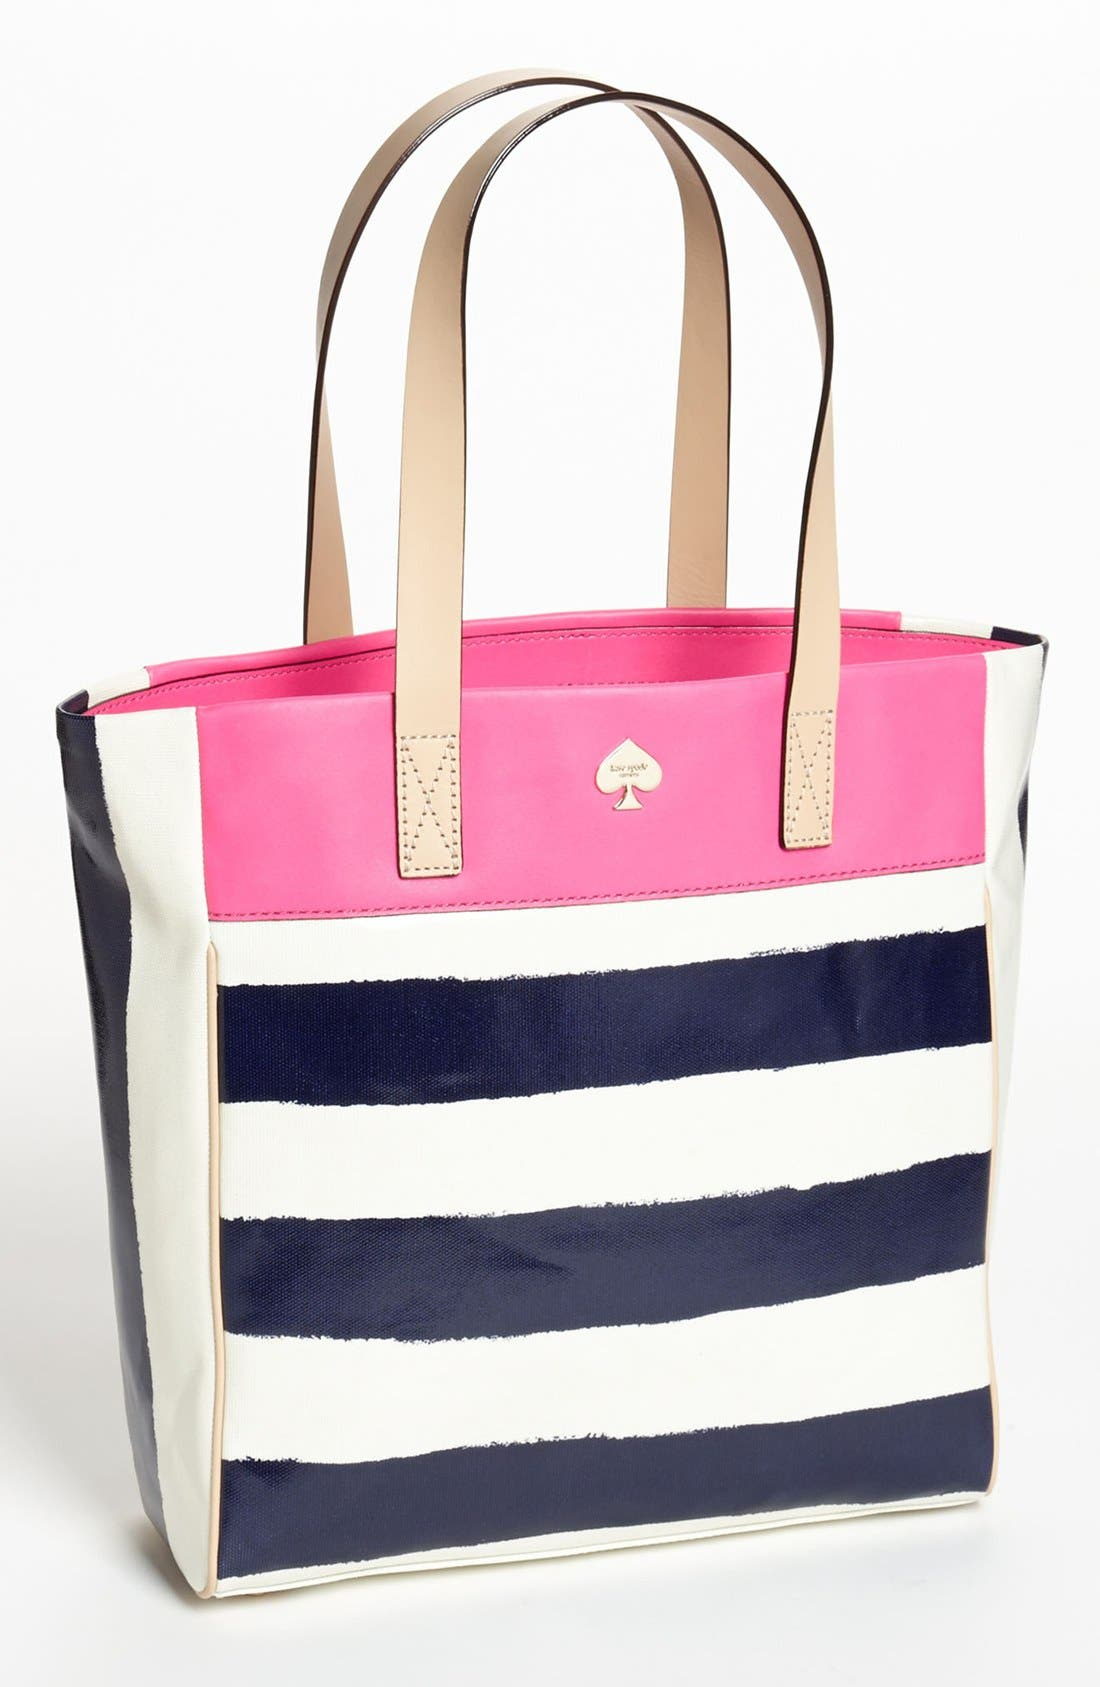 Alternate Image 1 Selected - kate spade new york 'pike place market - alicia' tote